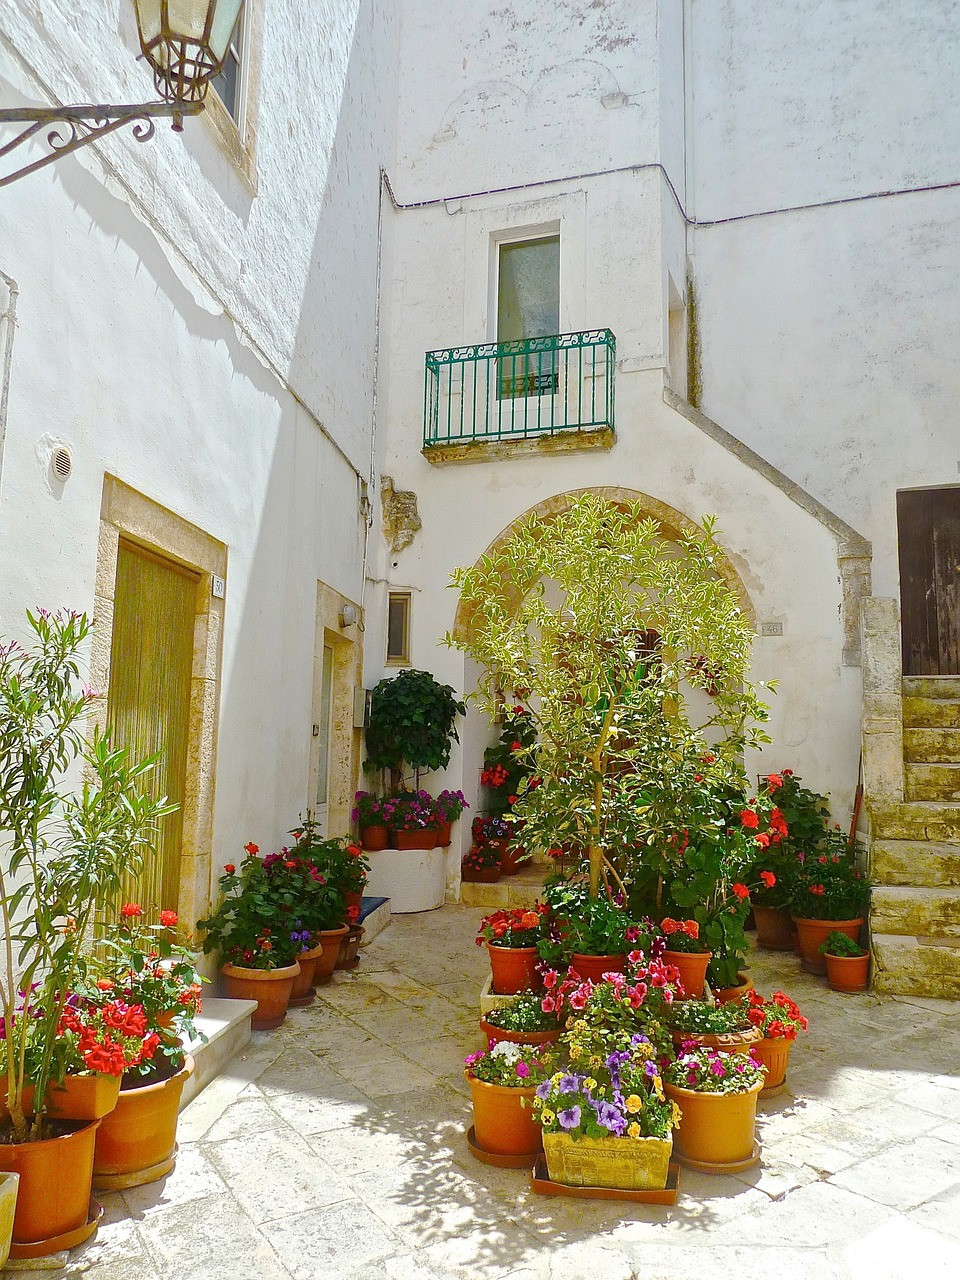 Mediterranean Courtyard with Colourful Terracotta Pots